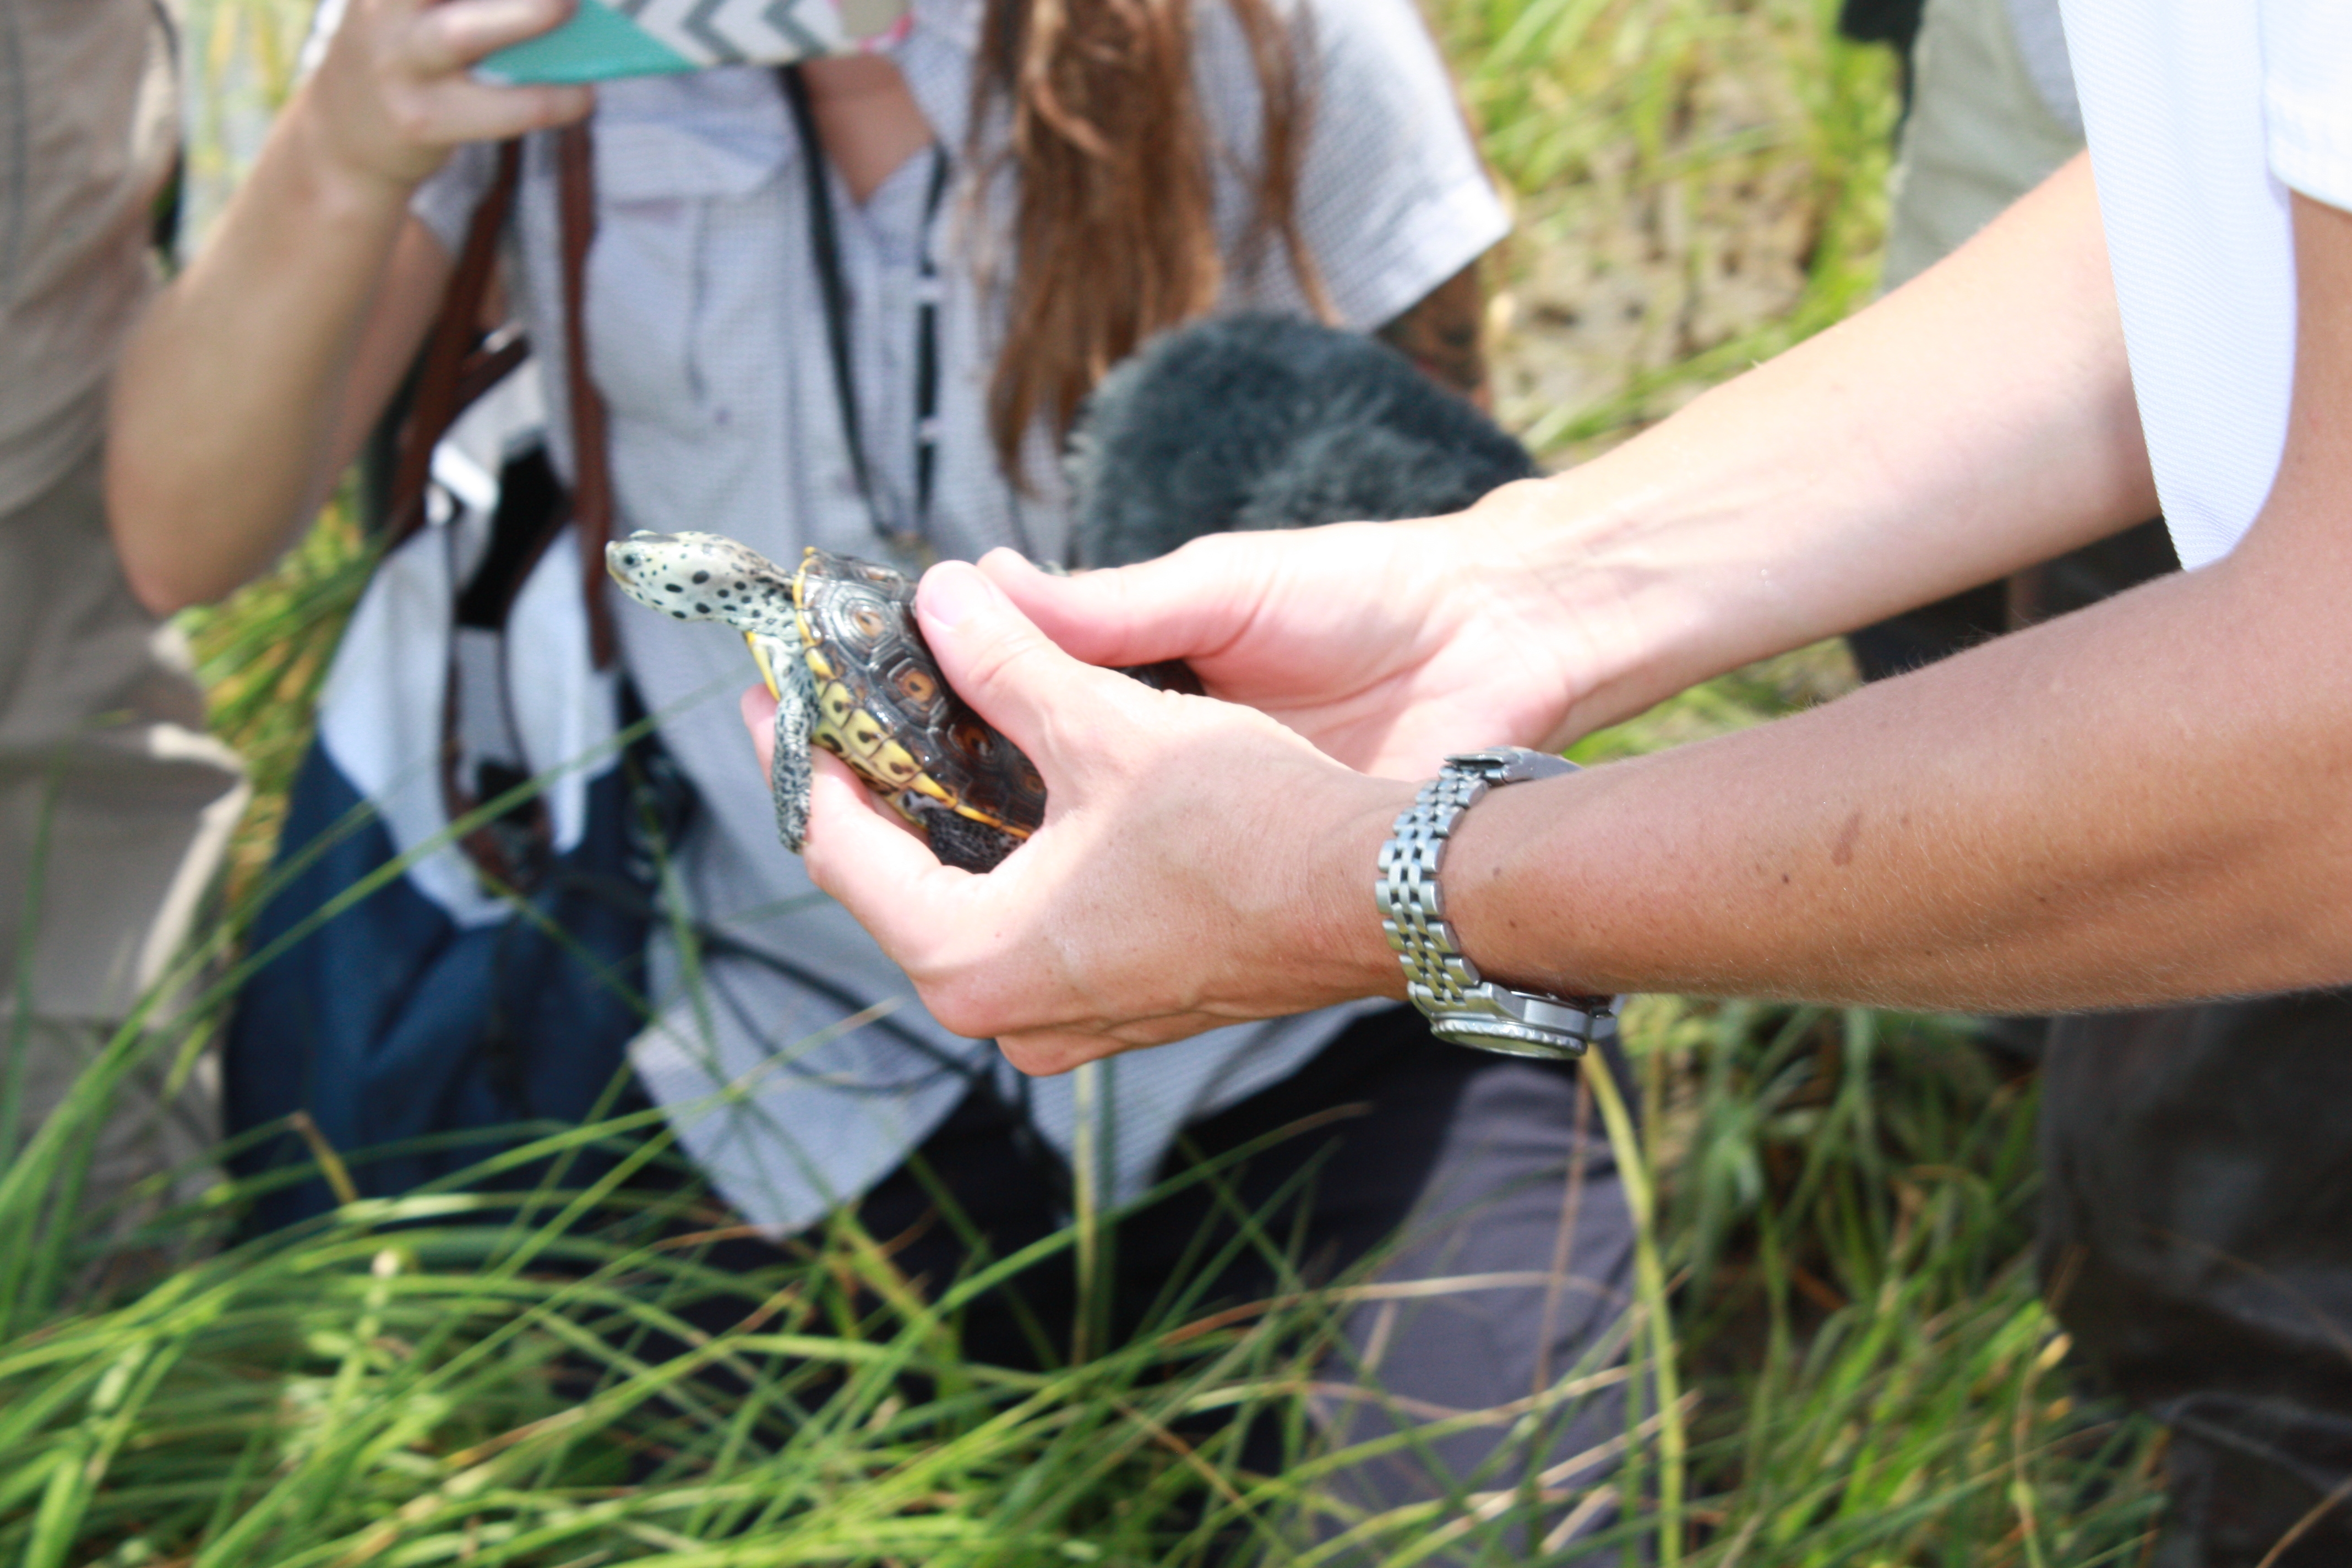 diamondback terrapins are released into the marsh at Chenier Ronquille barrier island